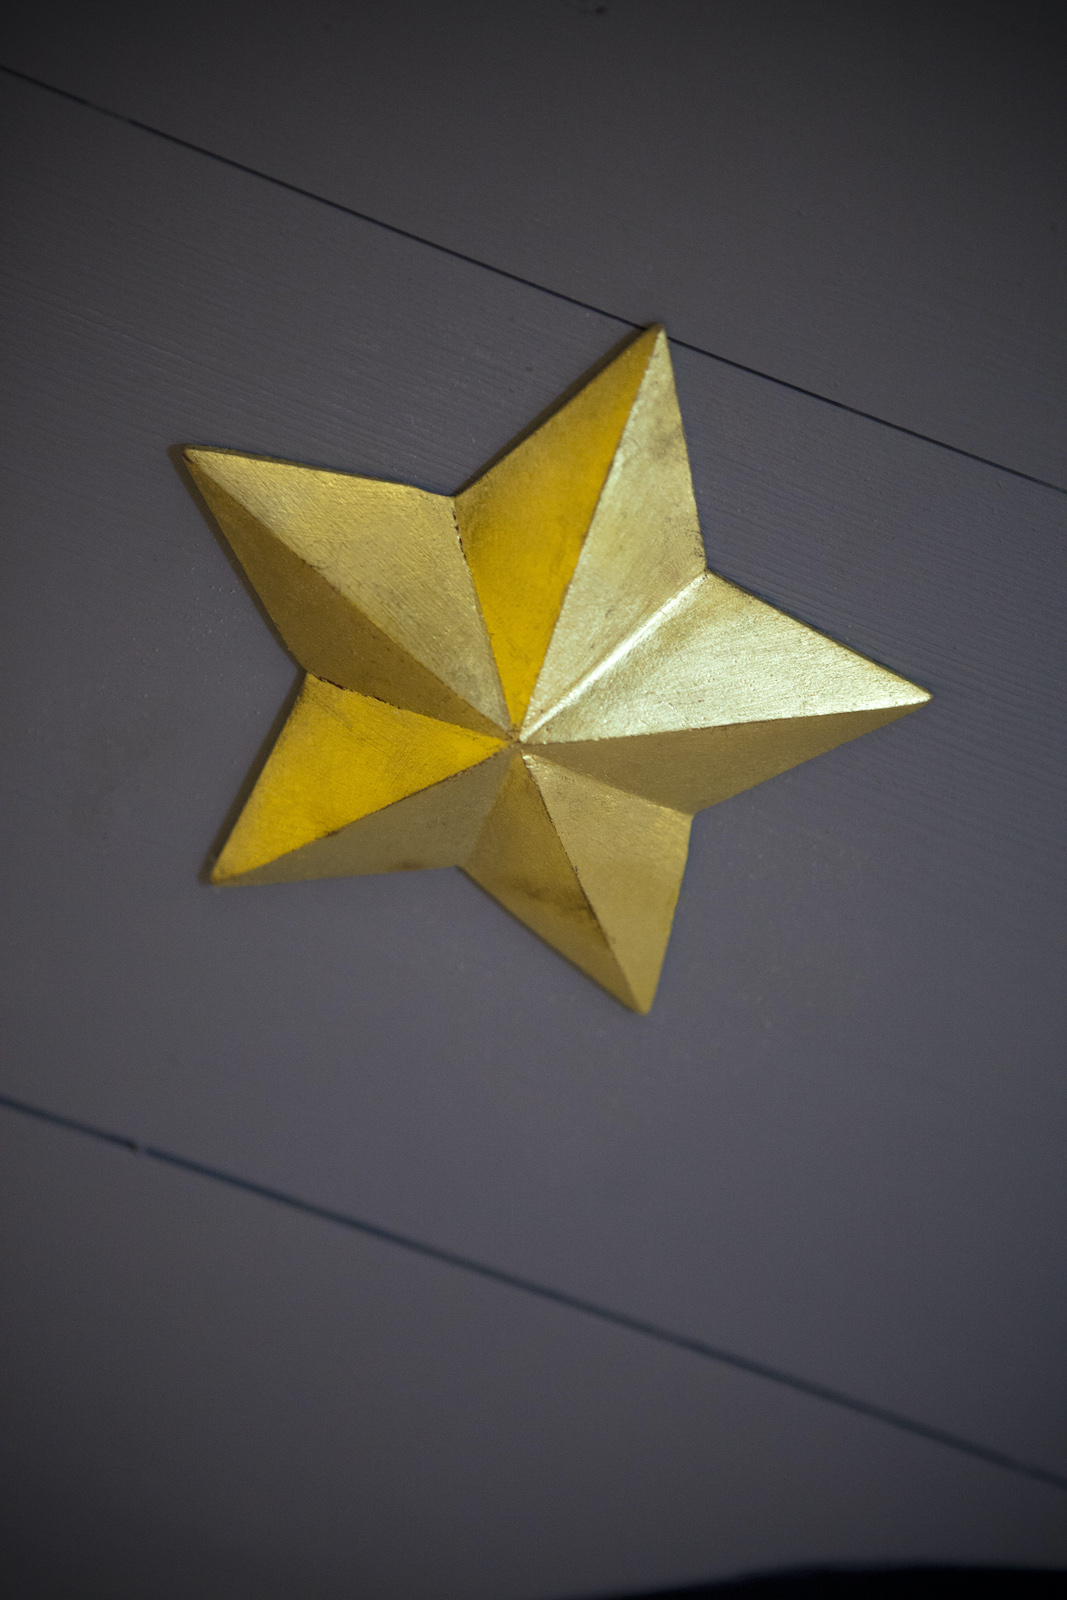 A gold star on a black wall